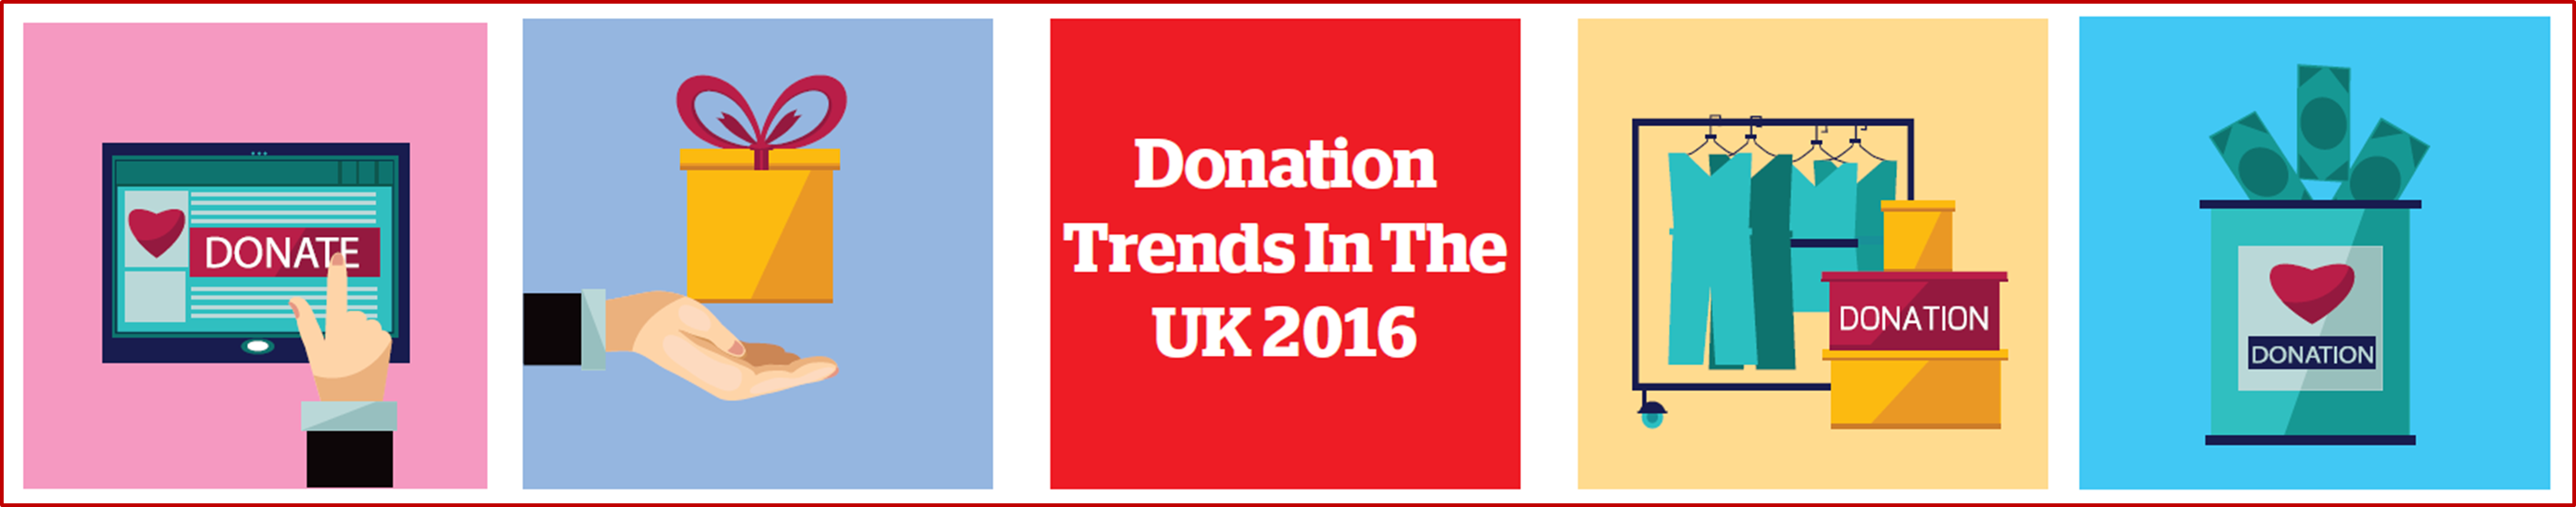 Donation Trends